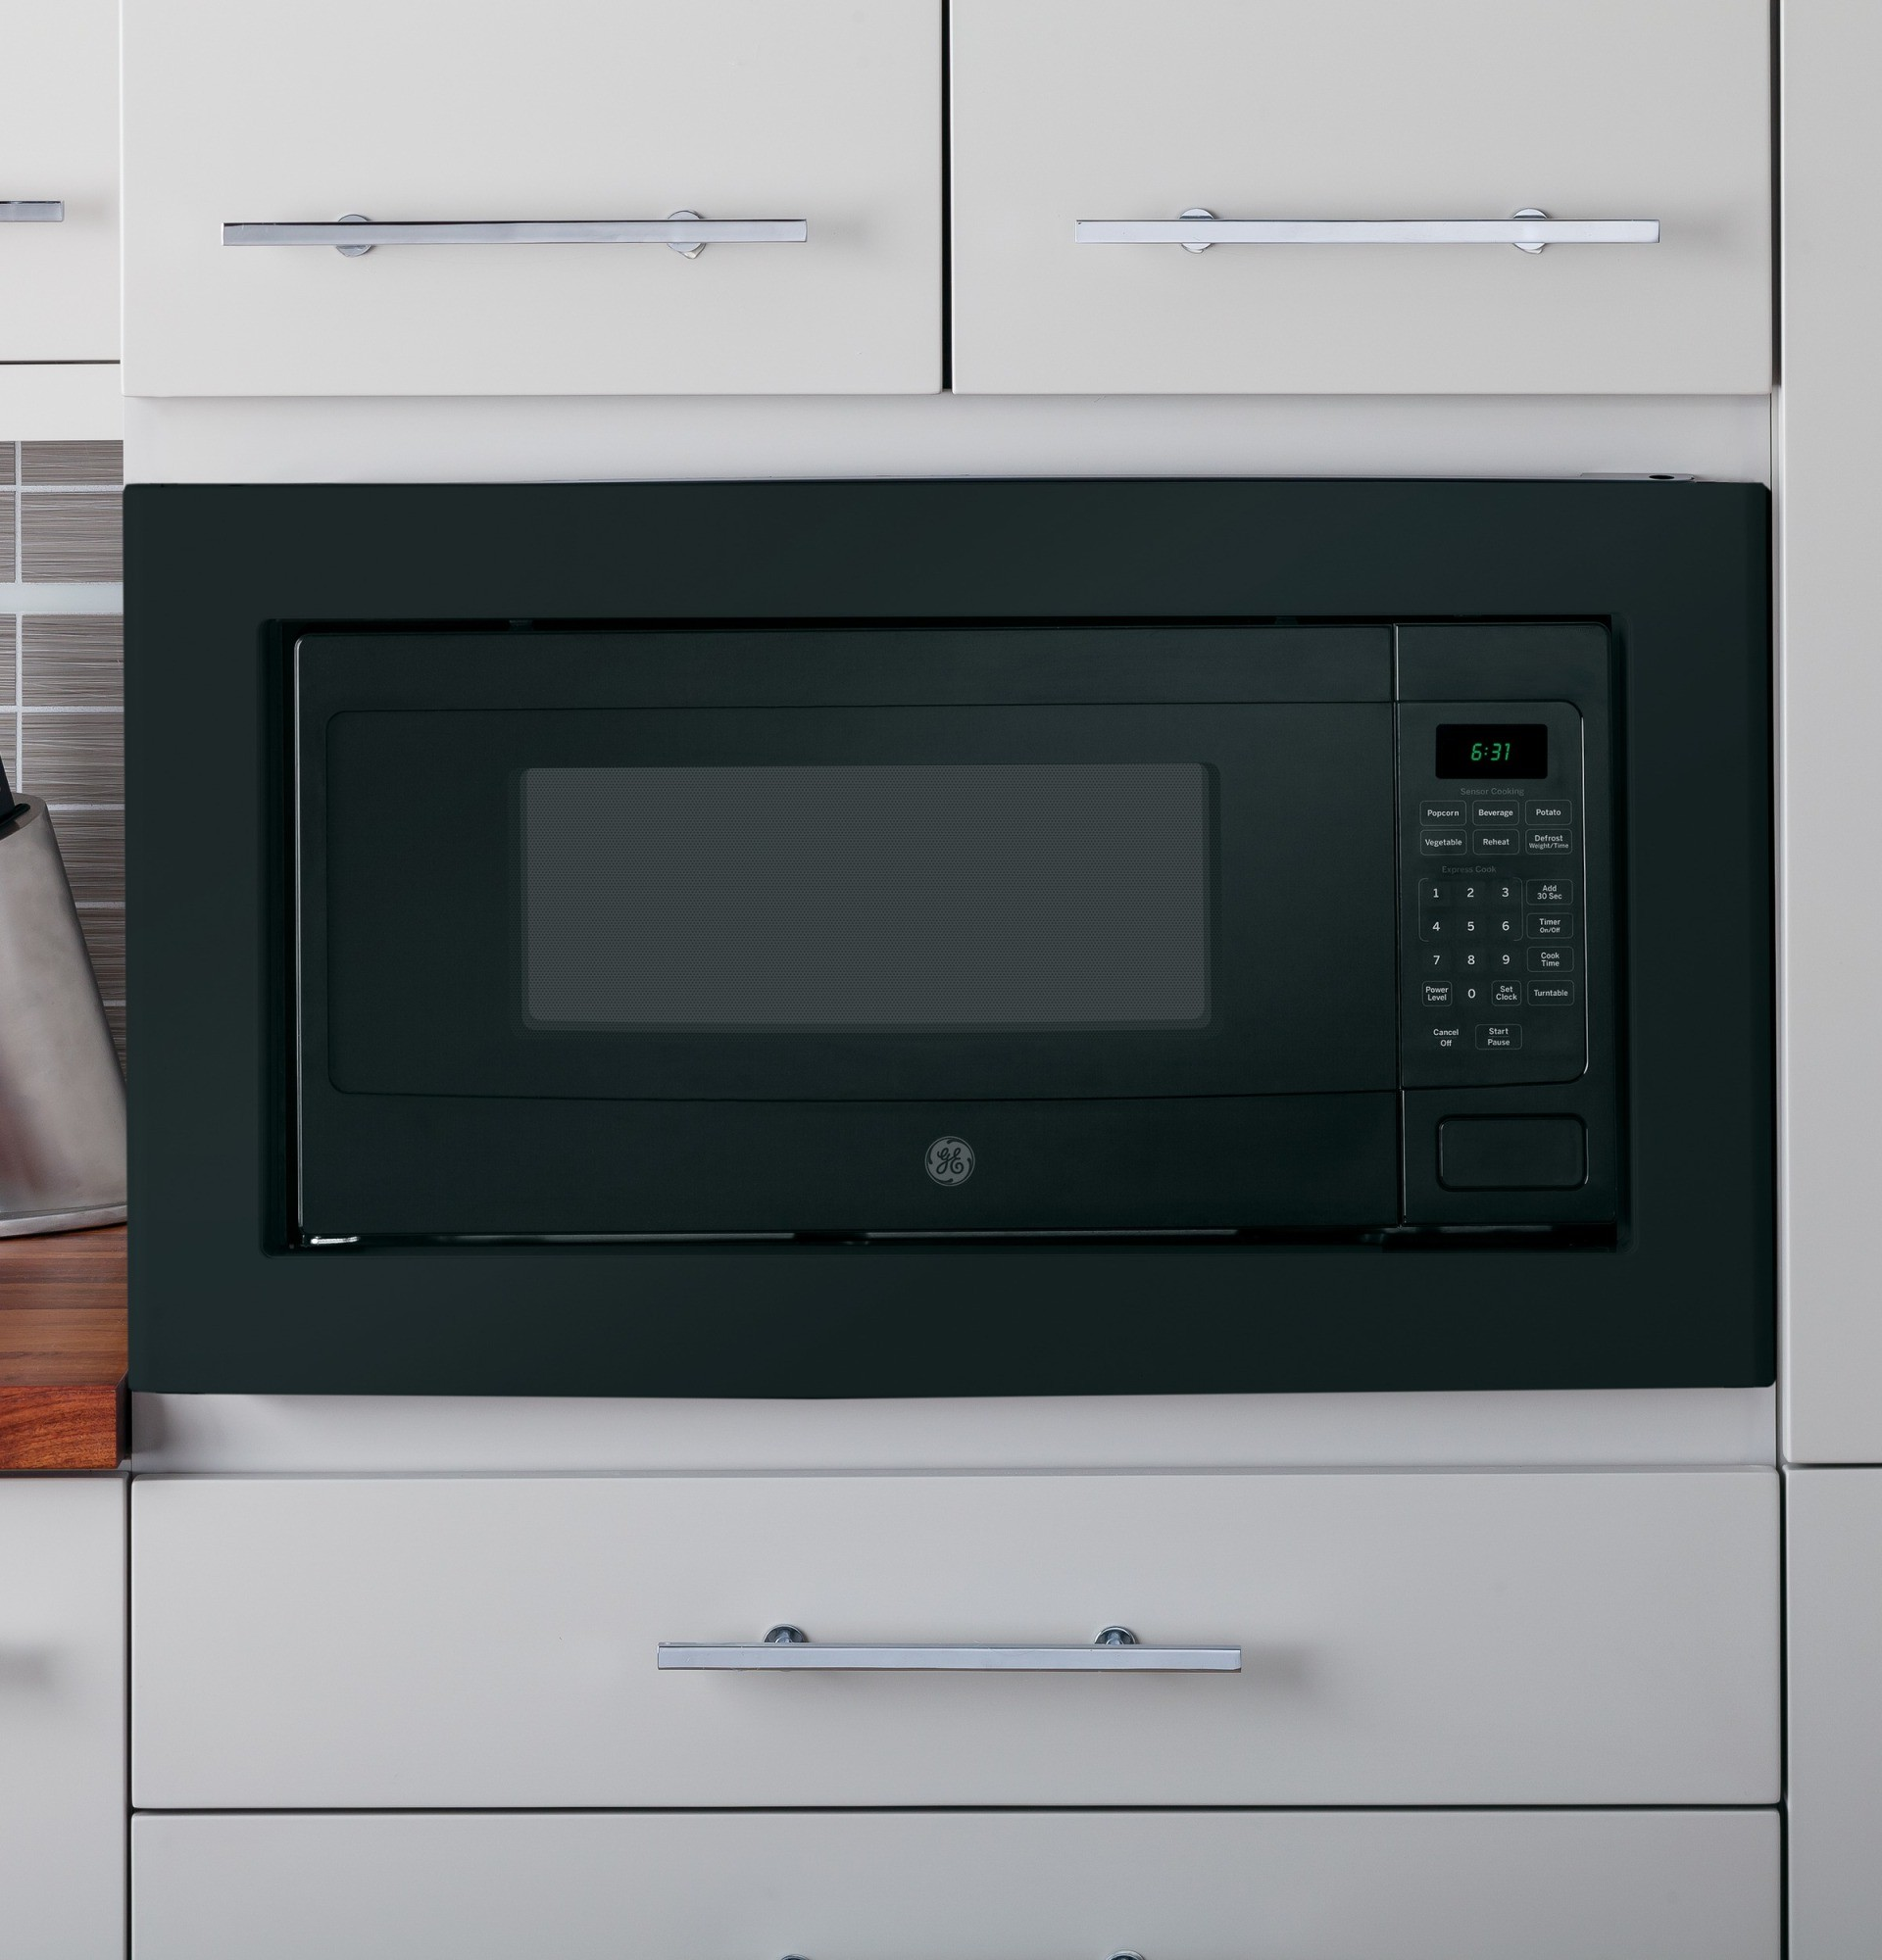 Pem31dfbb Ge Profile 1 1 Cu Ft Microwave Oven